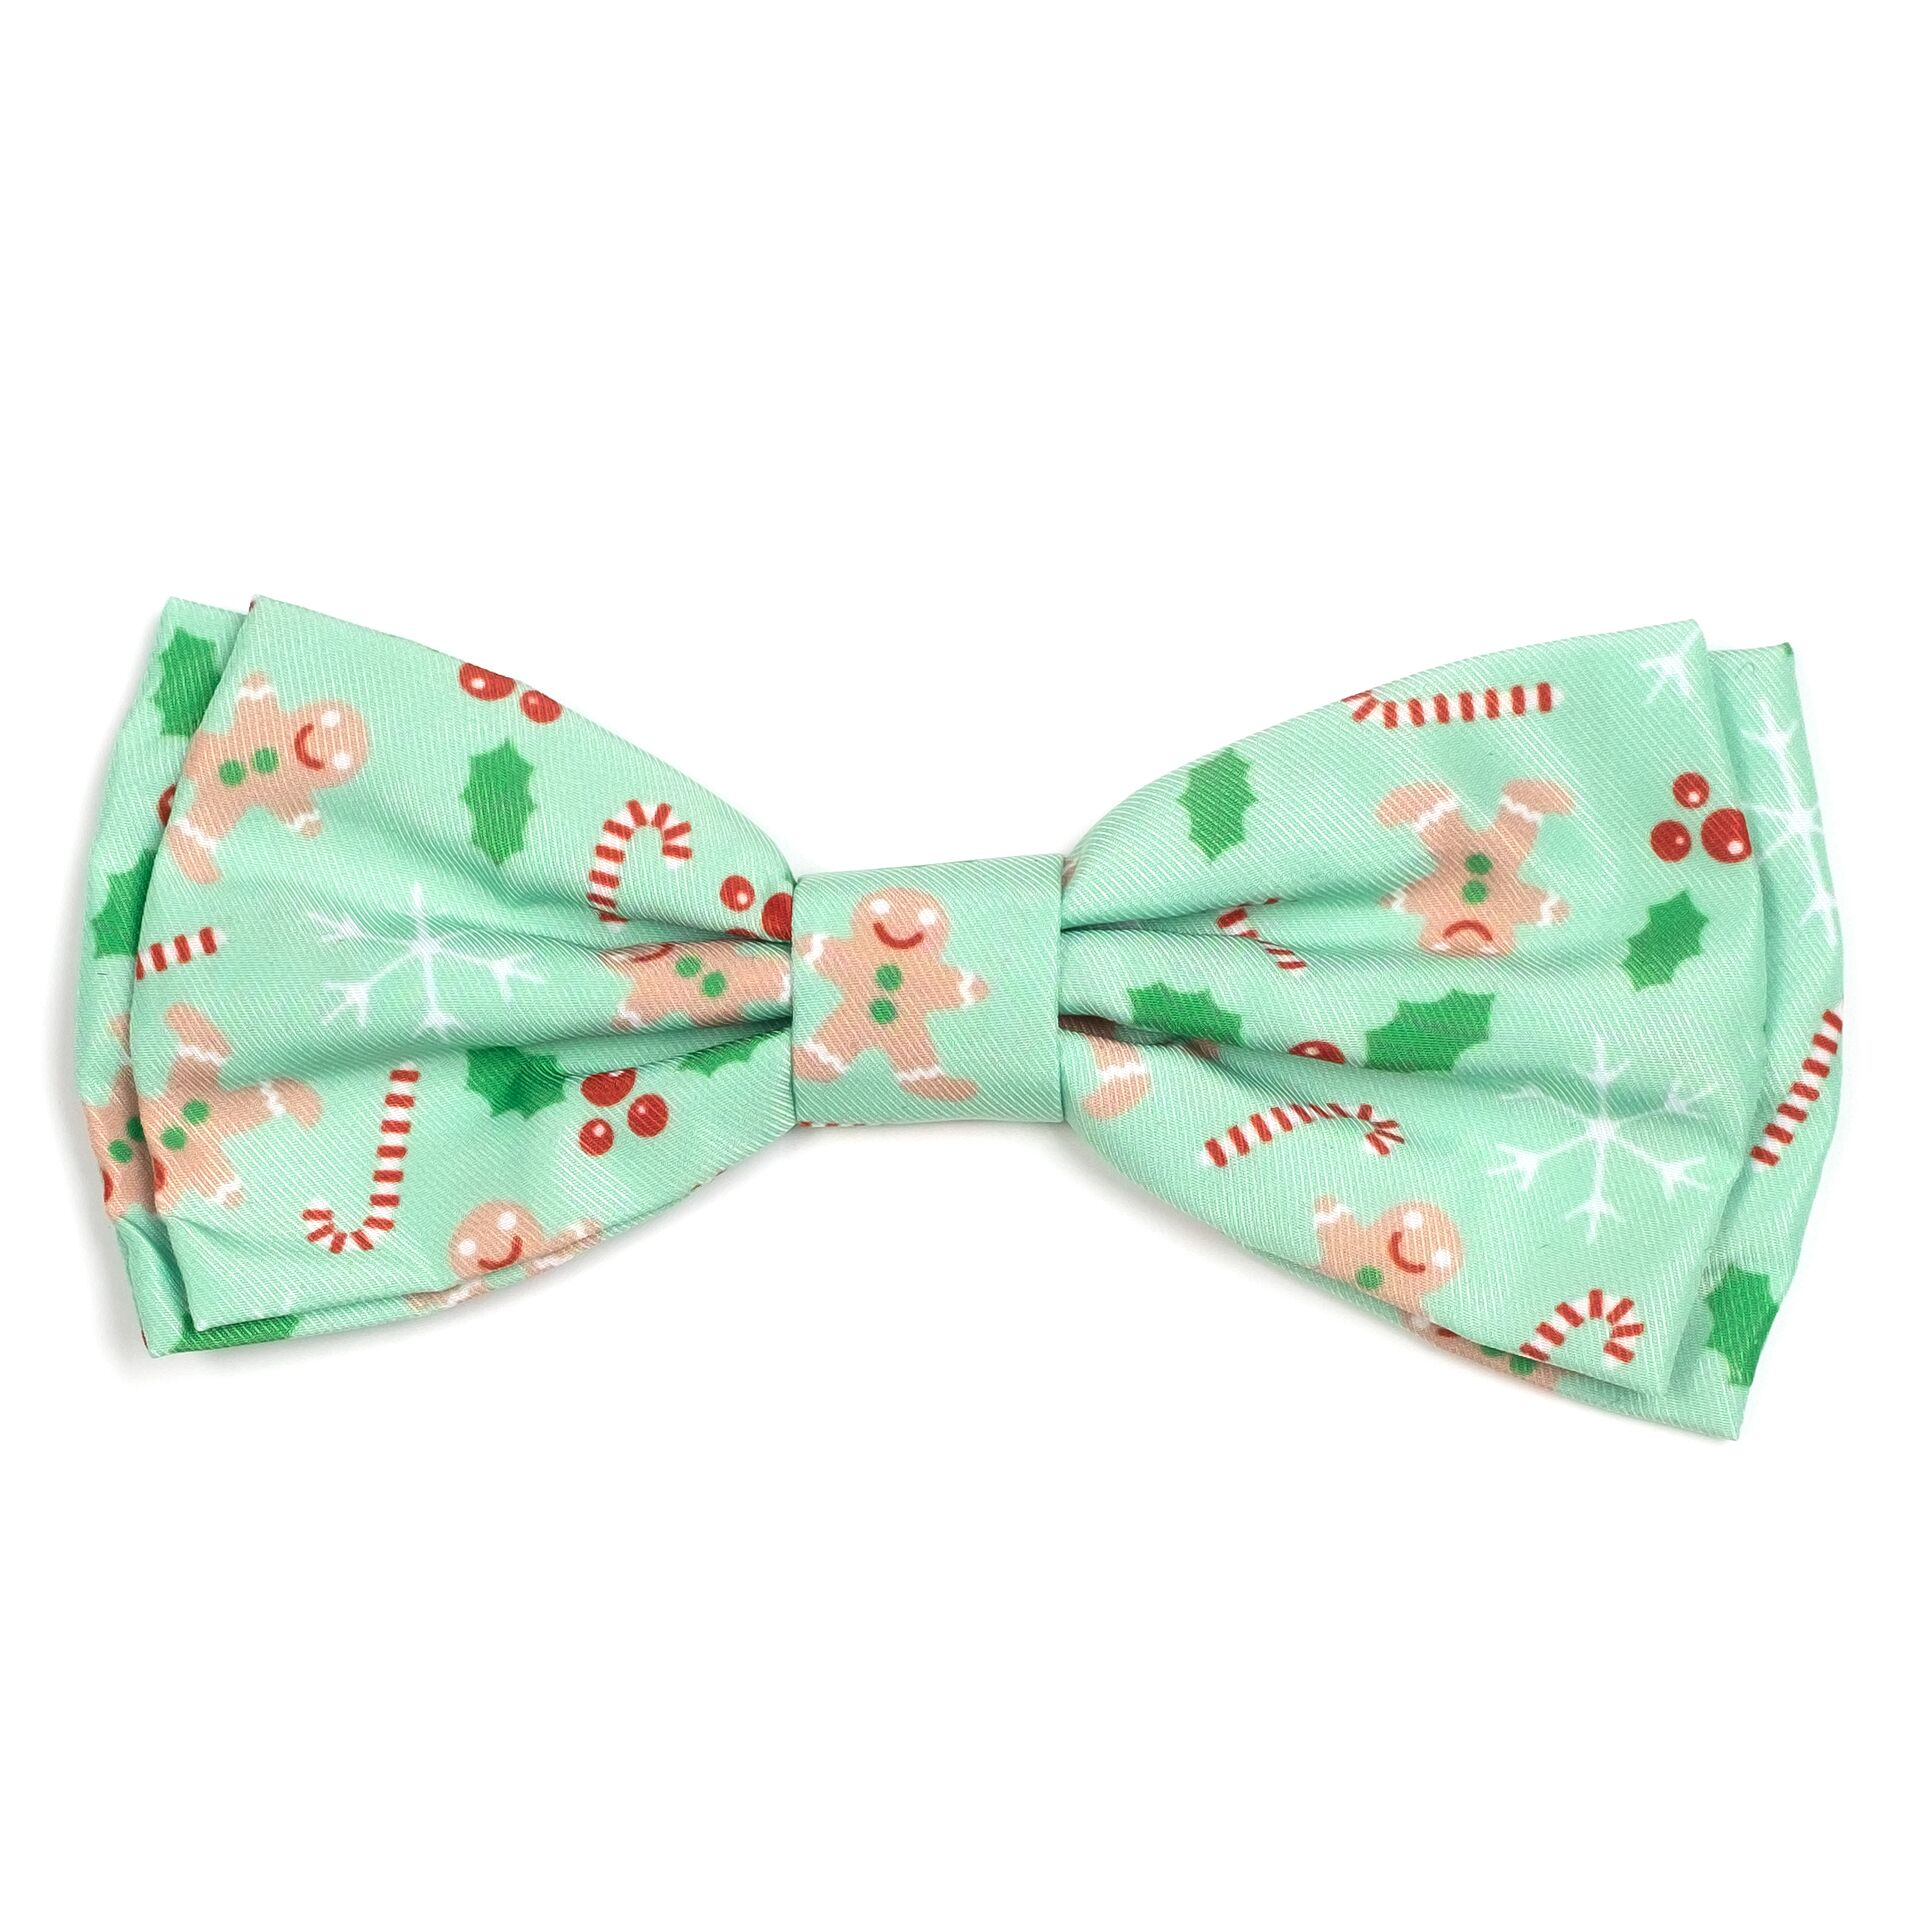 The Worthy Dog Bow Tie, Gingerbread, Large